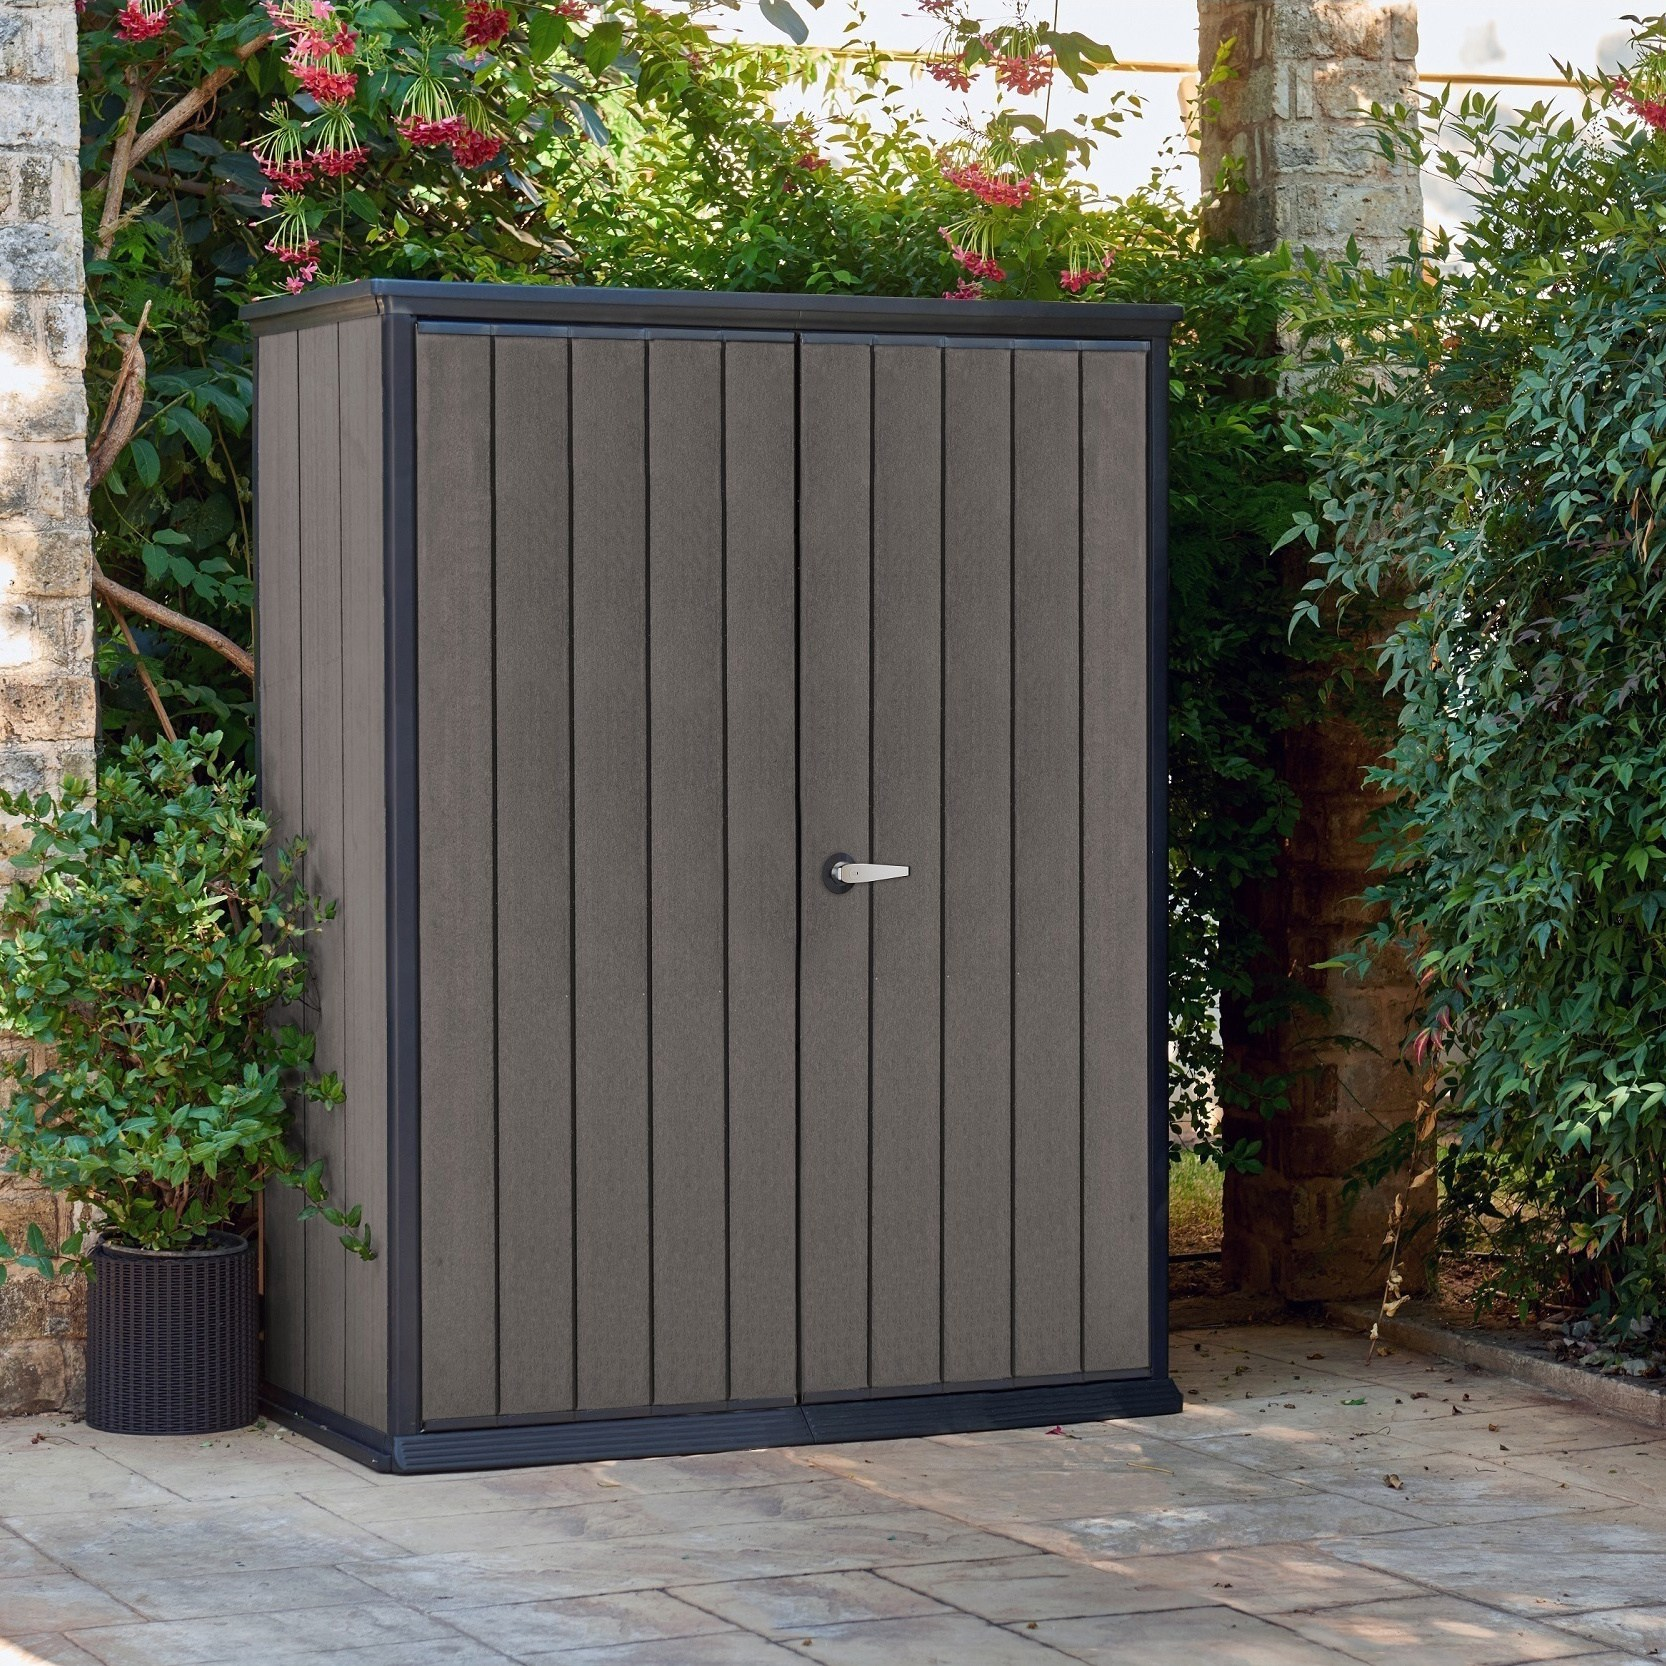 Keter High Store Keter High Store Resin Wood Look And Feel Outdoor Garden Storage Shed